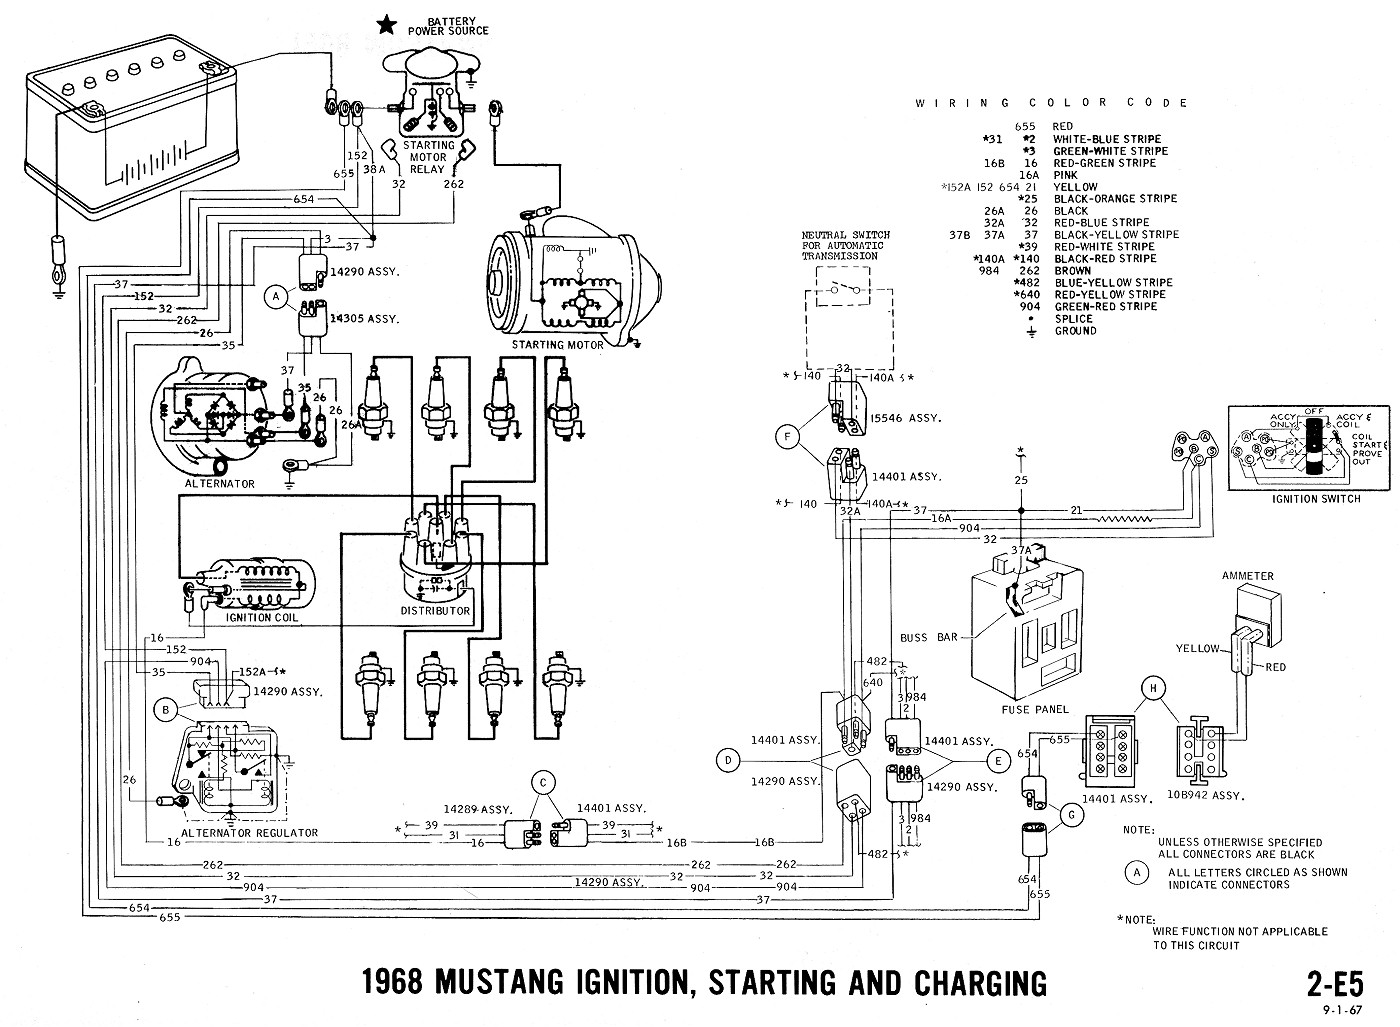 hight resolution of 68 ford mustang alternator diagram wiring diagram option 1965 ford mustang alternator wiring diagram 1968 mustang